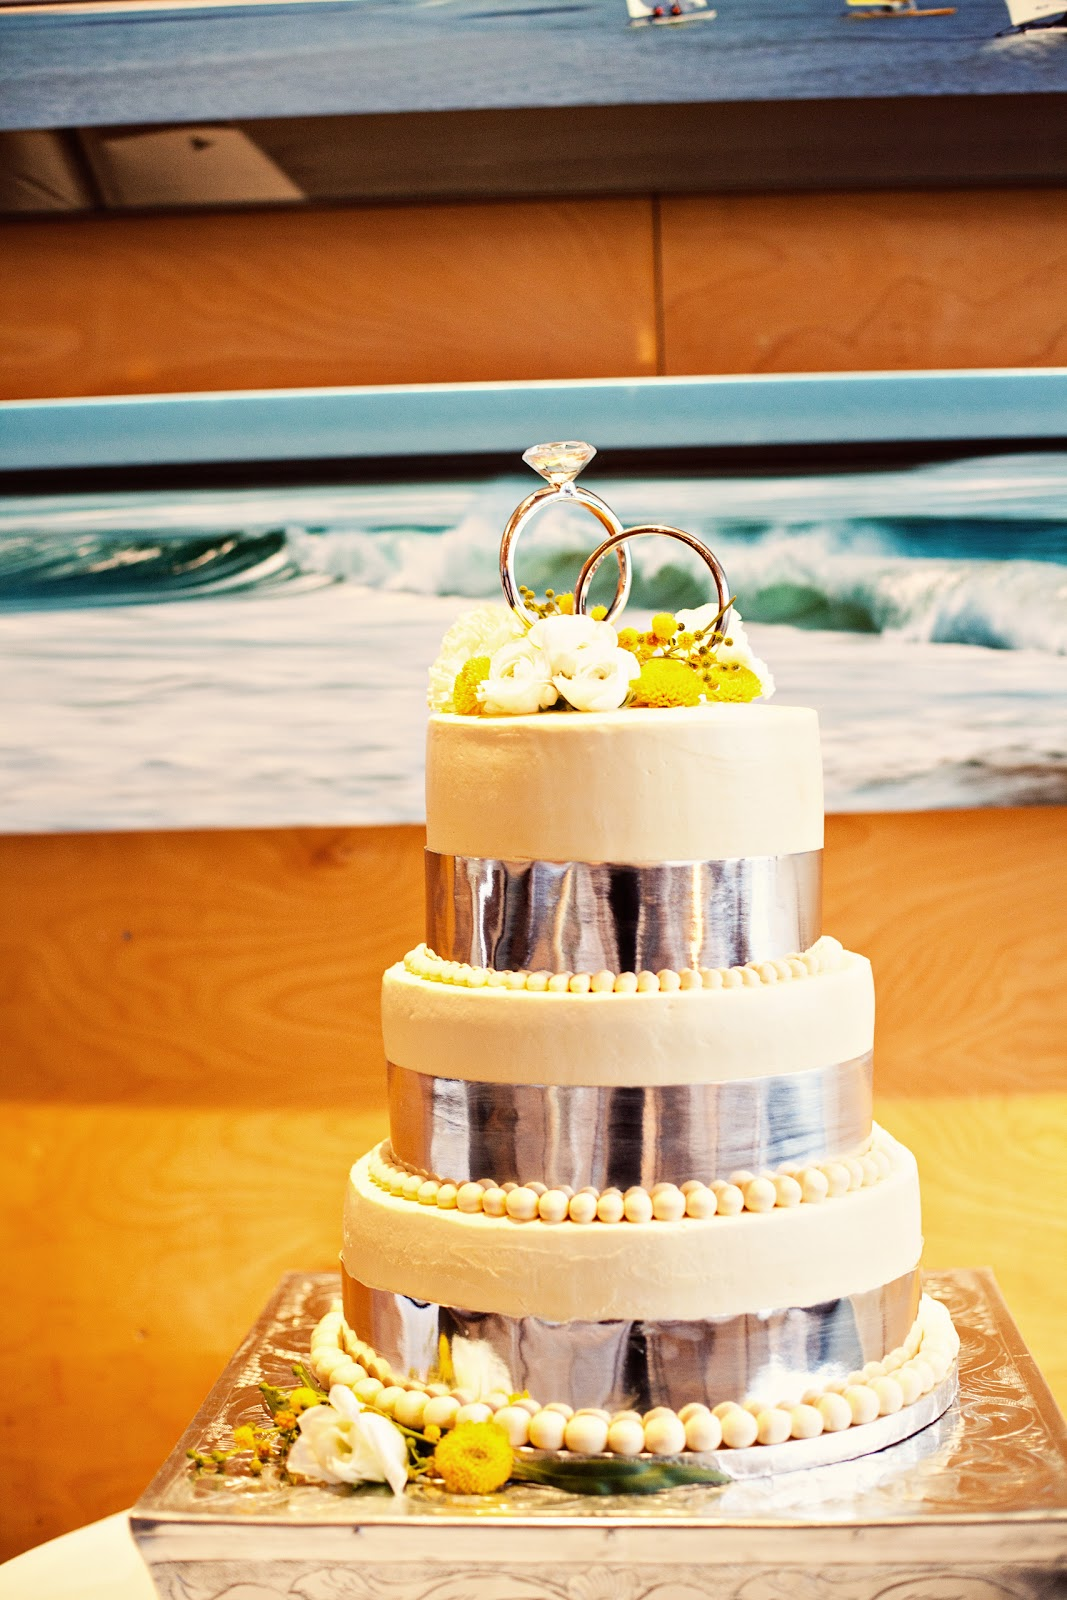 http://3.bp.blogspot.com/-EIVaWvXKIgA/Te20x-6RbAI/AAAAAAAADQ0/chqm432LpYY/s1600/modern%20beach%20wedding%20metallic%20wedding%20cake%20with%20yellow%20button%20mums.jpg